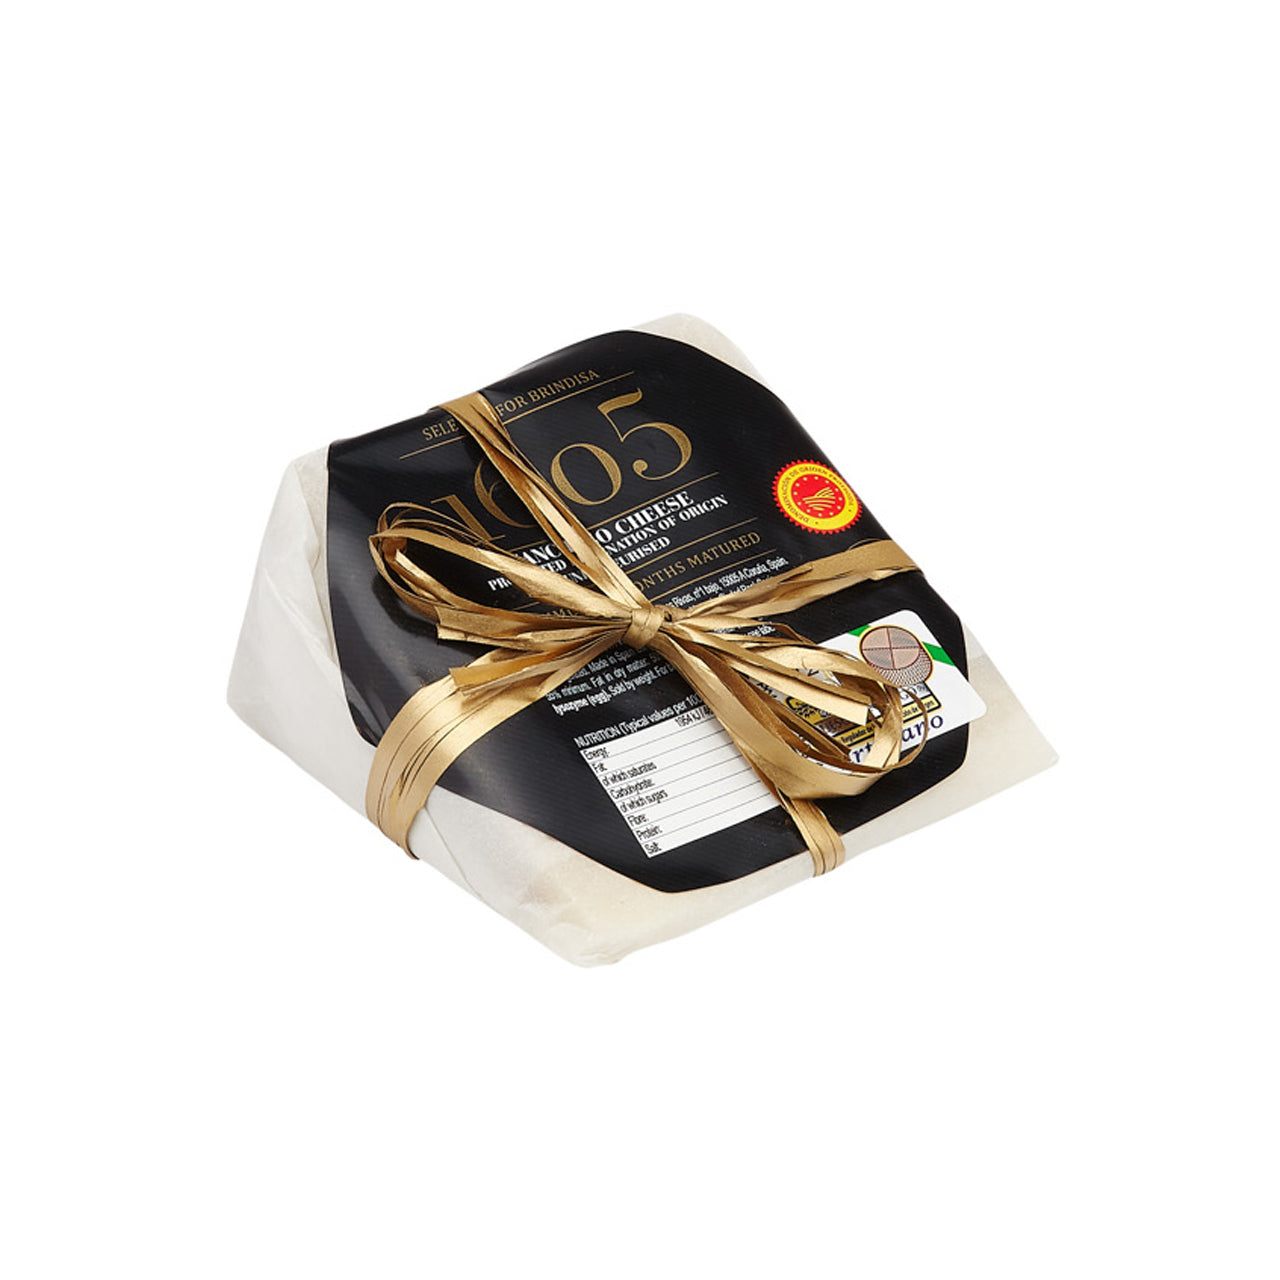 1605 Manchego cured wedge: £8.95